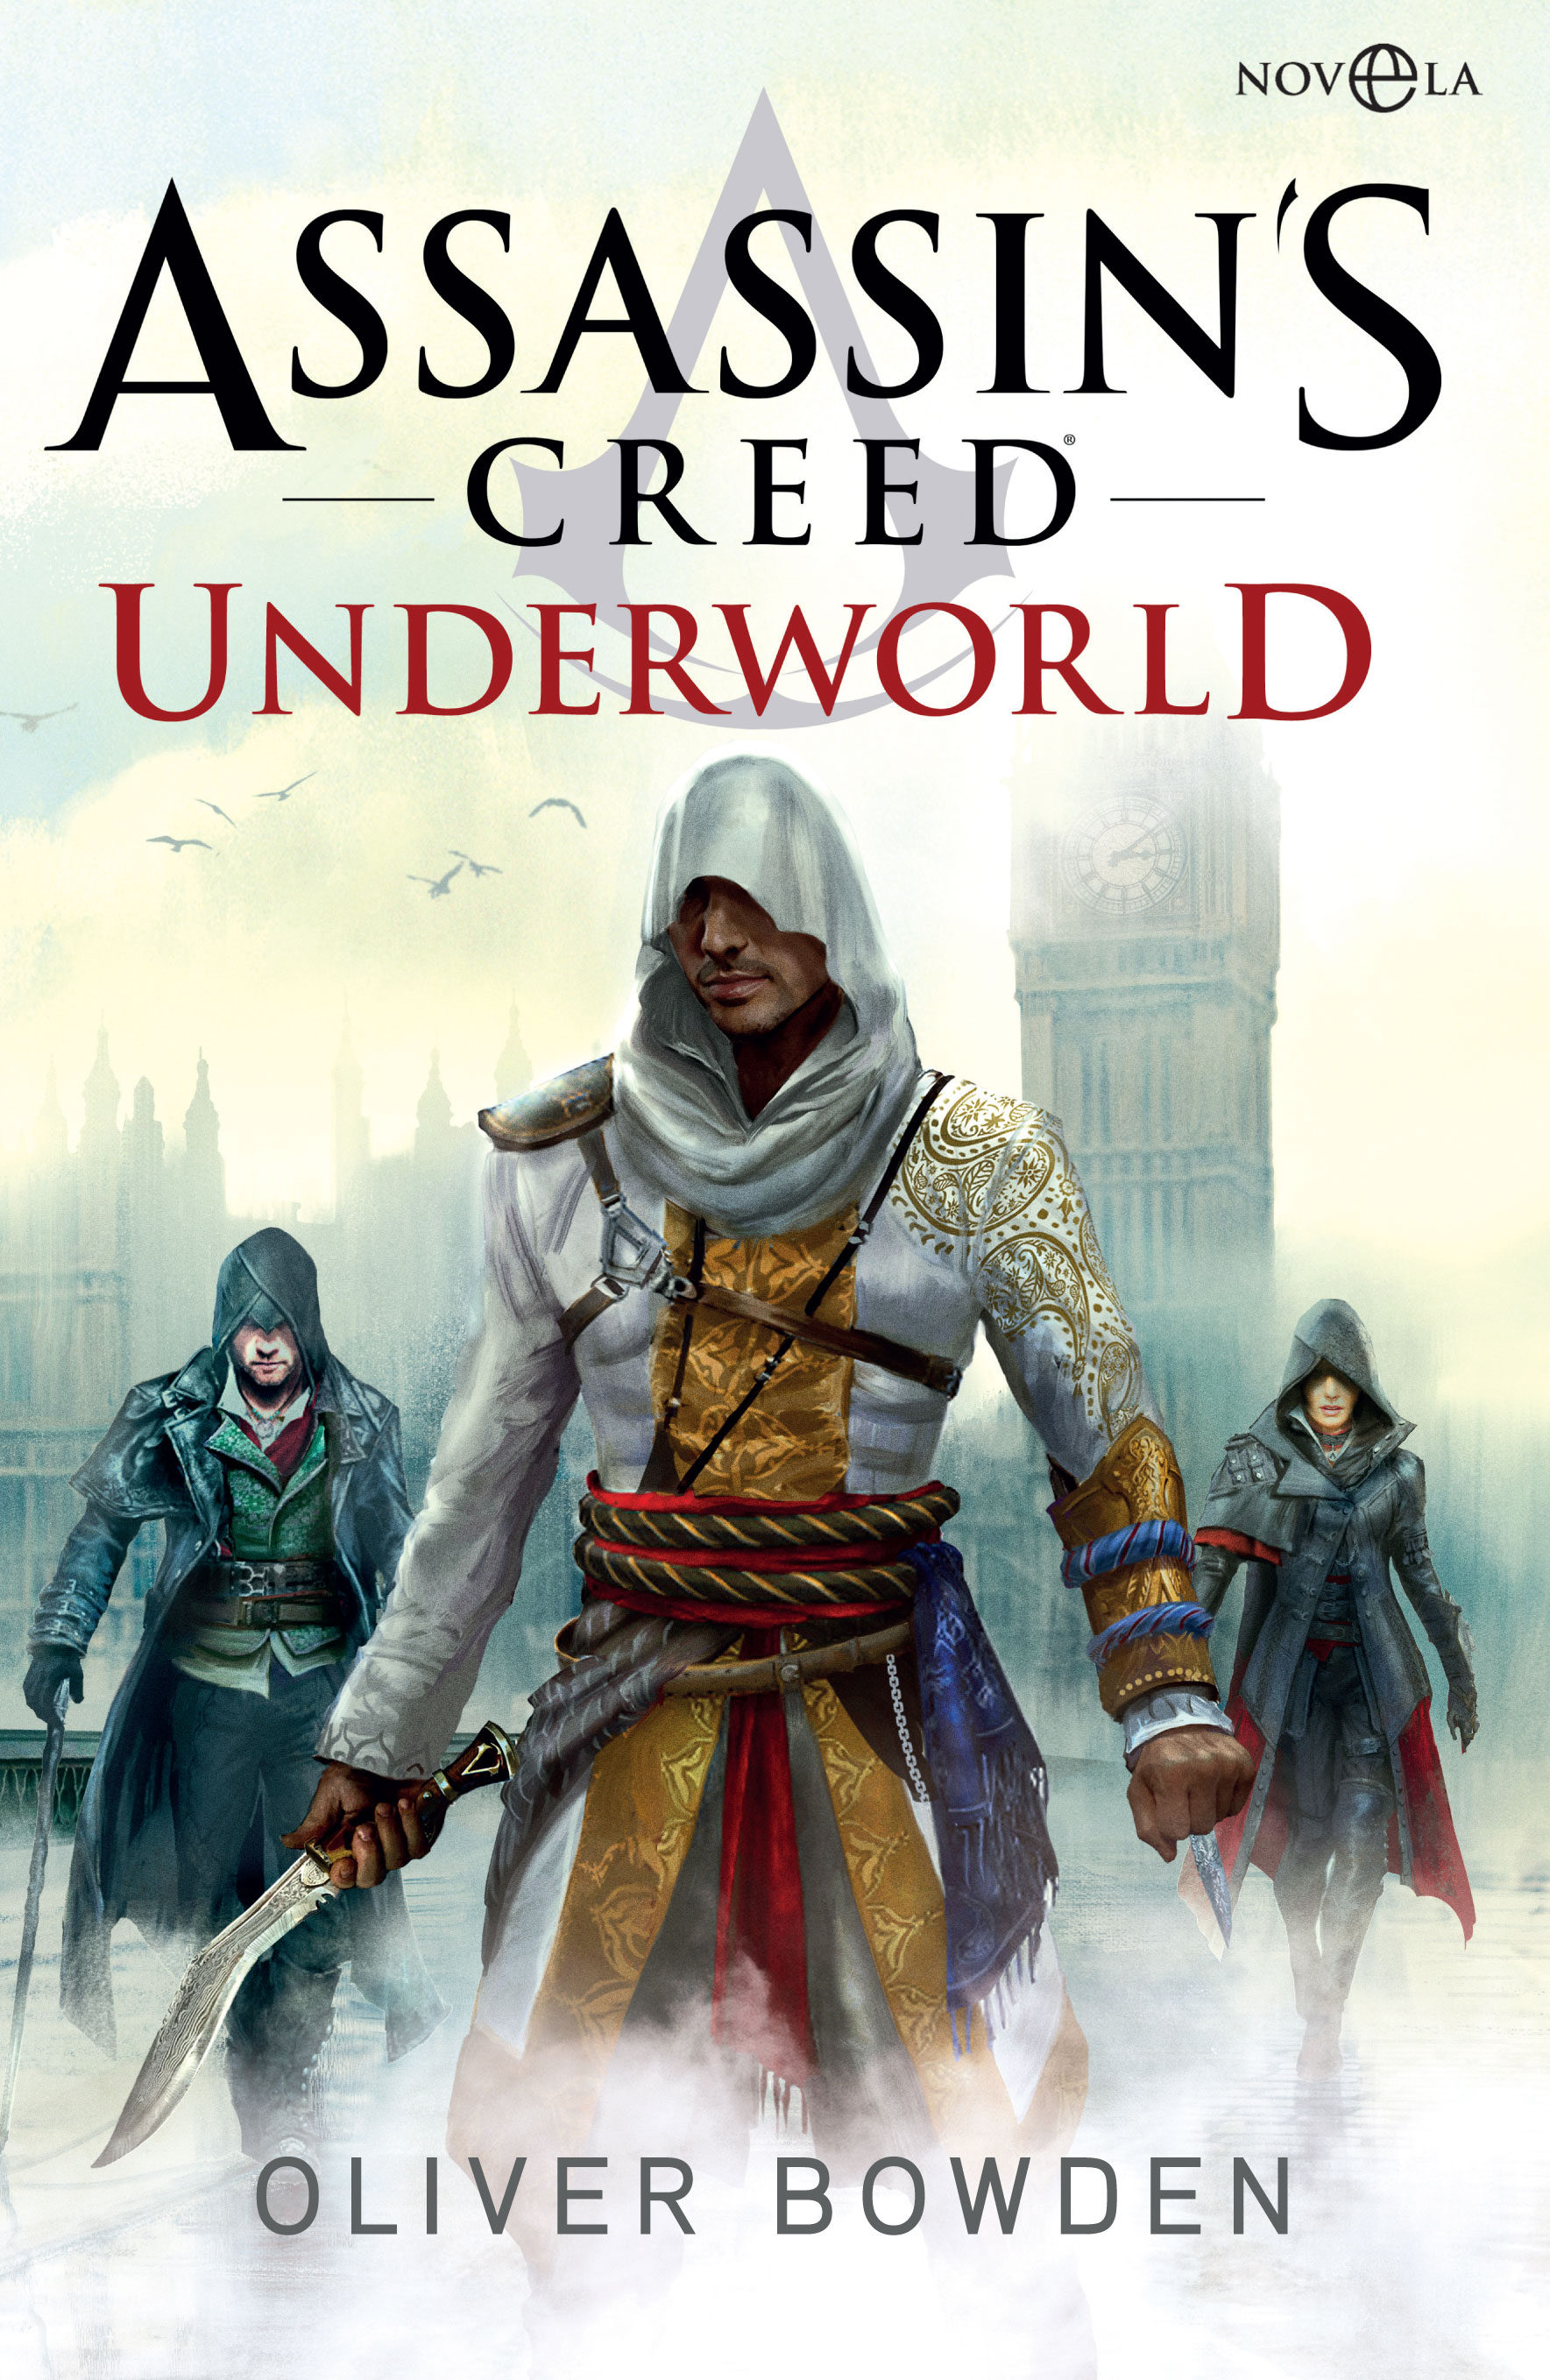 Assassins Creed Libros Assassin 39s Creed Underworld Ebook Oliver Bowden